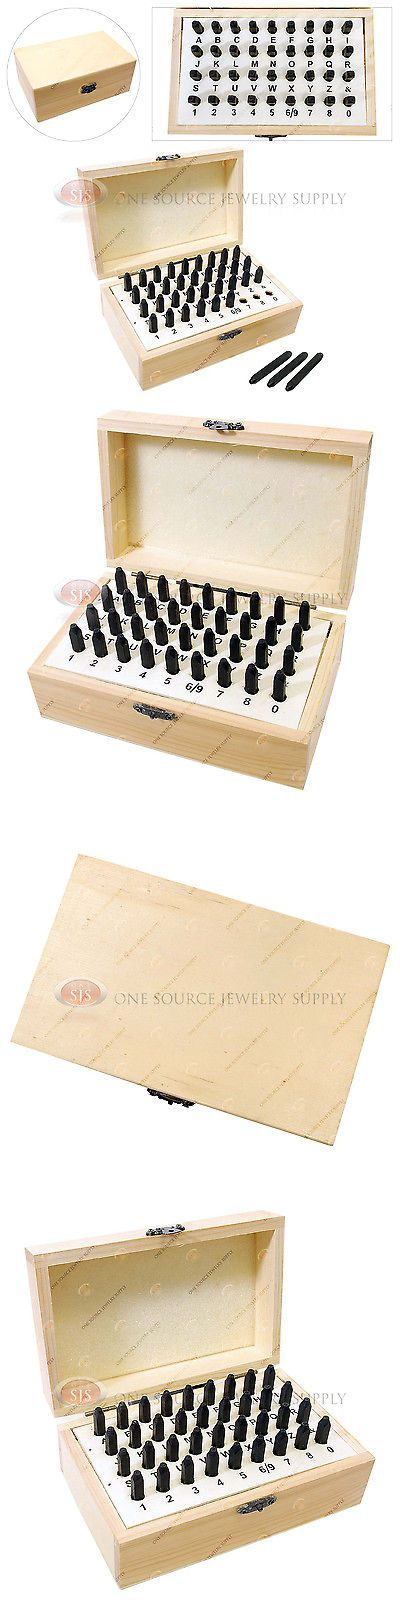 Punches and Stamps 179258: 2Mm Letter And Number Punches 36 Piece Set Steel Metal Wooden Storage Box Hobby BUY IT NOW ONLY: $35.32